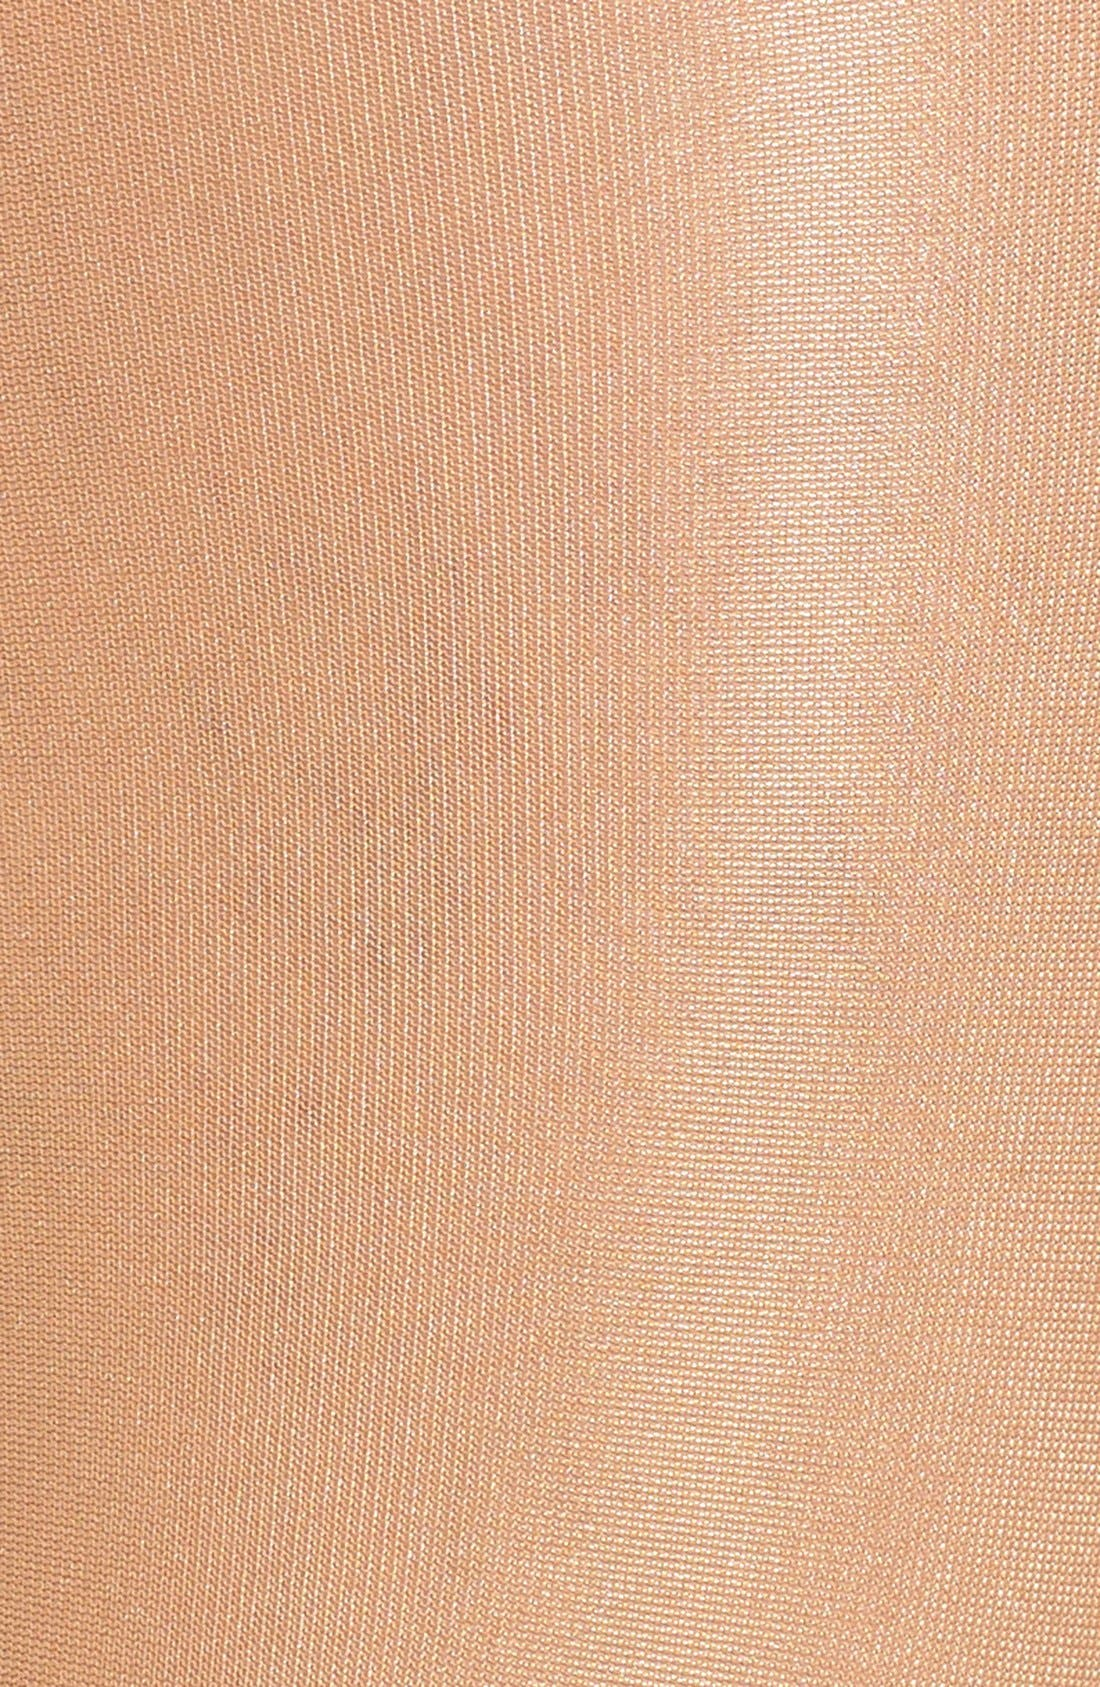 Alternate Image 3  - Wolford 'Neon 40' Pantyhose